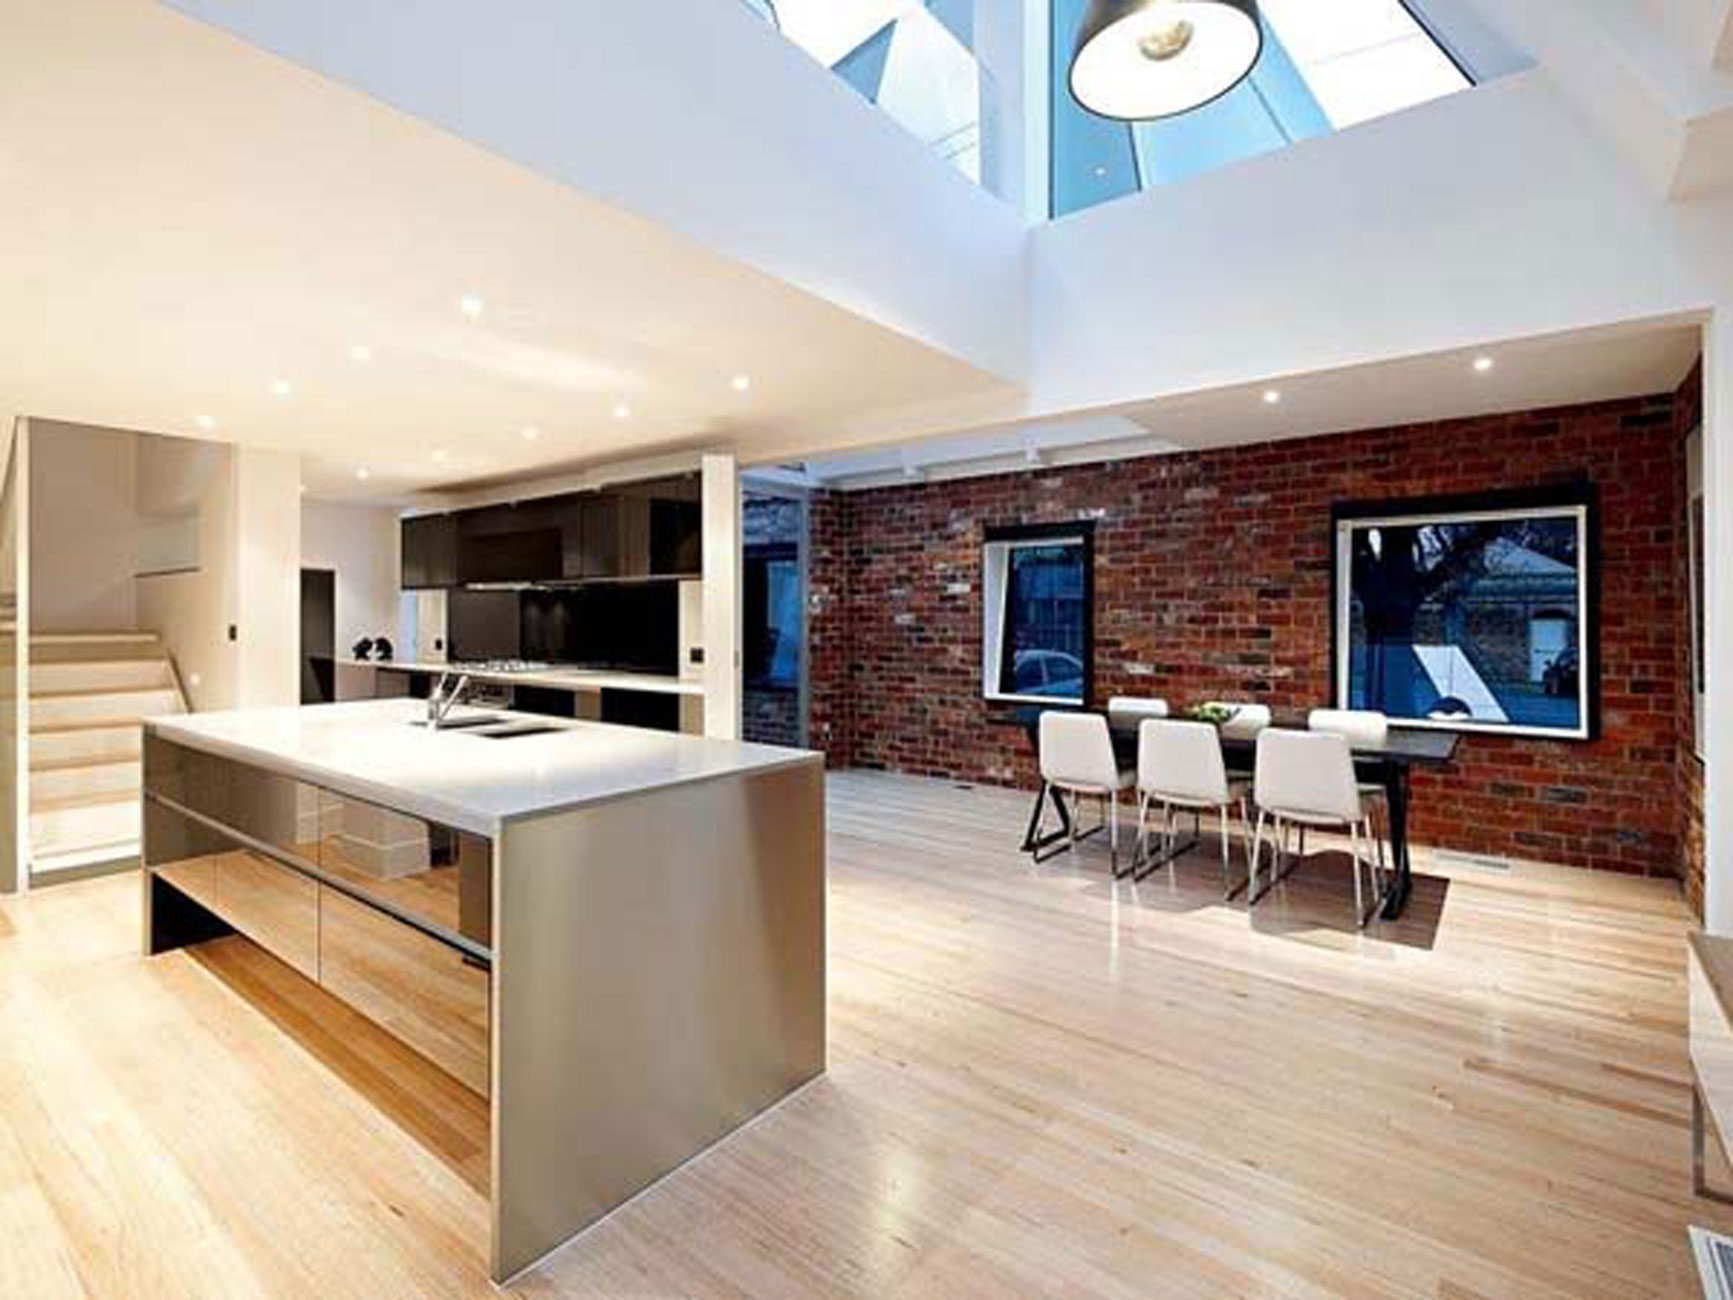 Modern Kitchen Interior Designs - HomesFeed